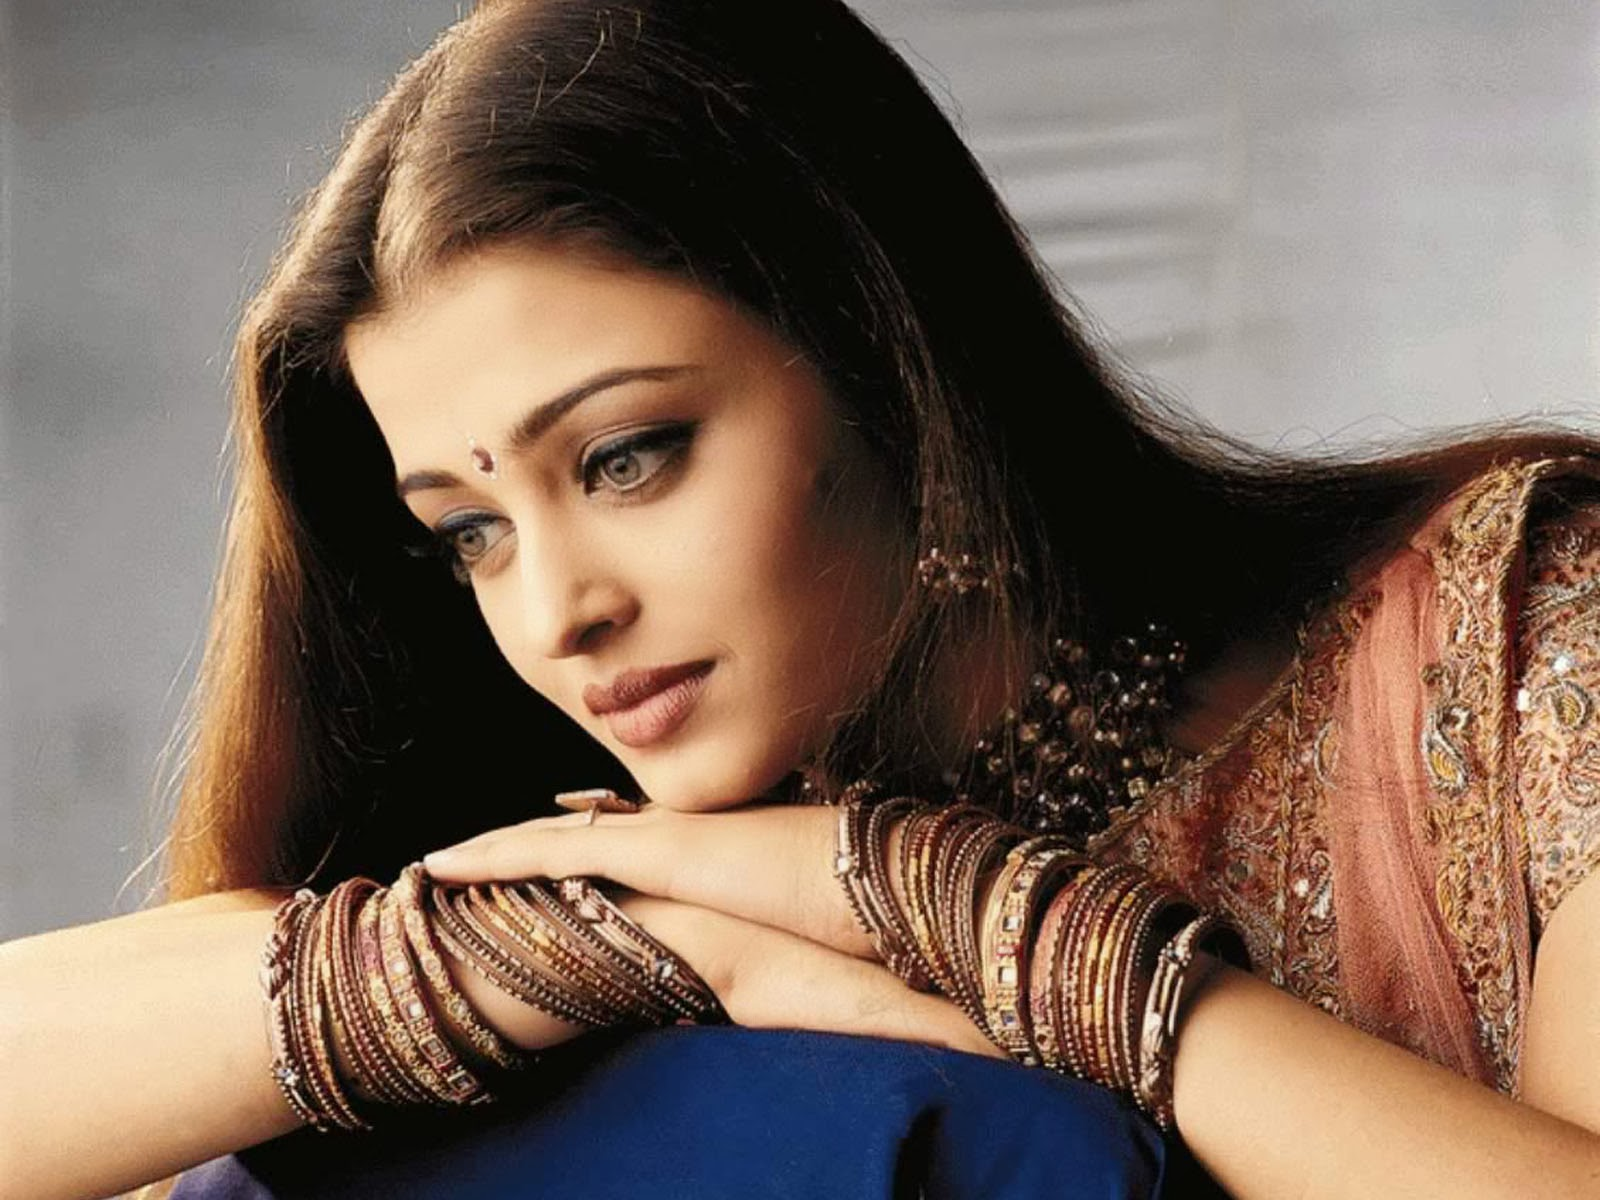 Birthday special: here is all that you need to know about Aishwarya Rai